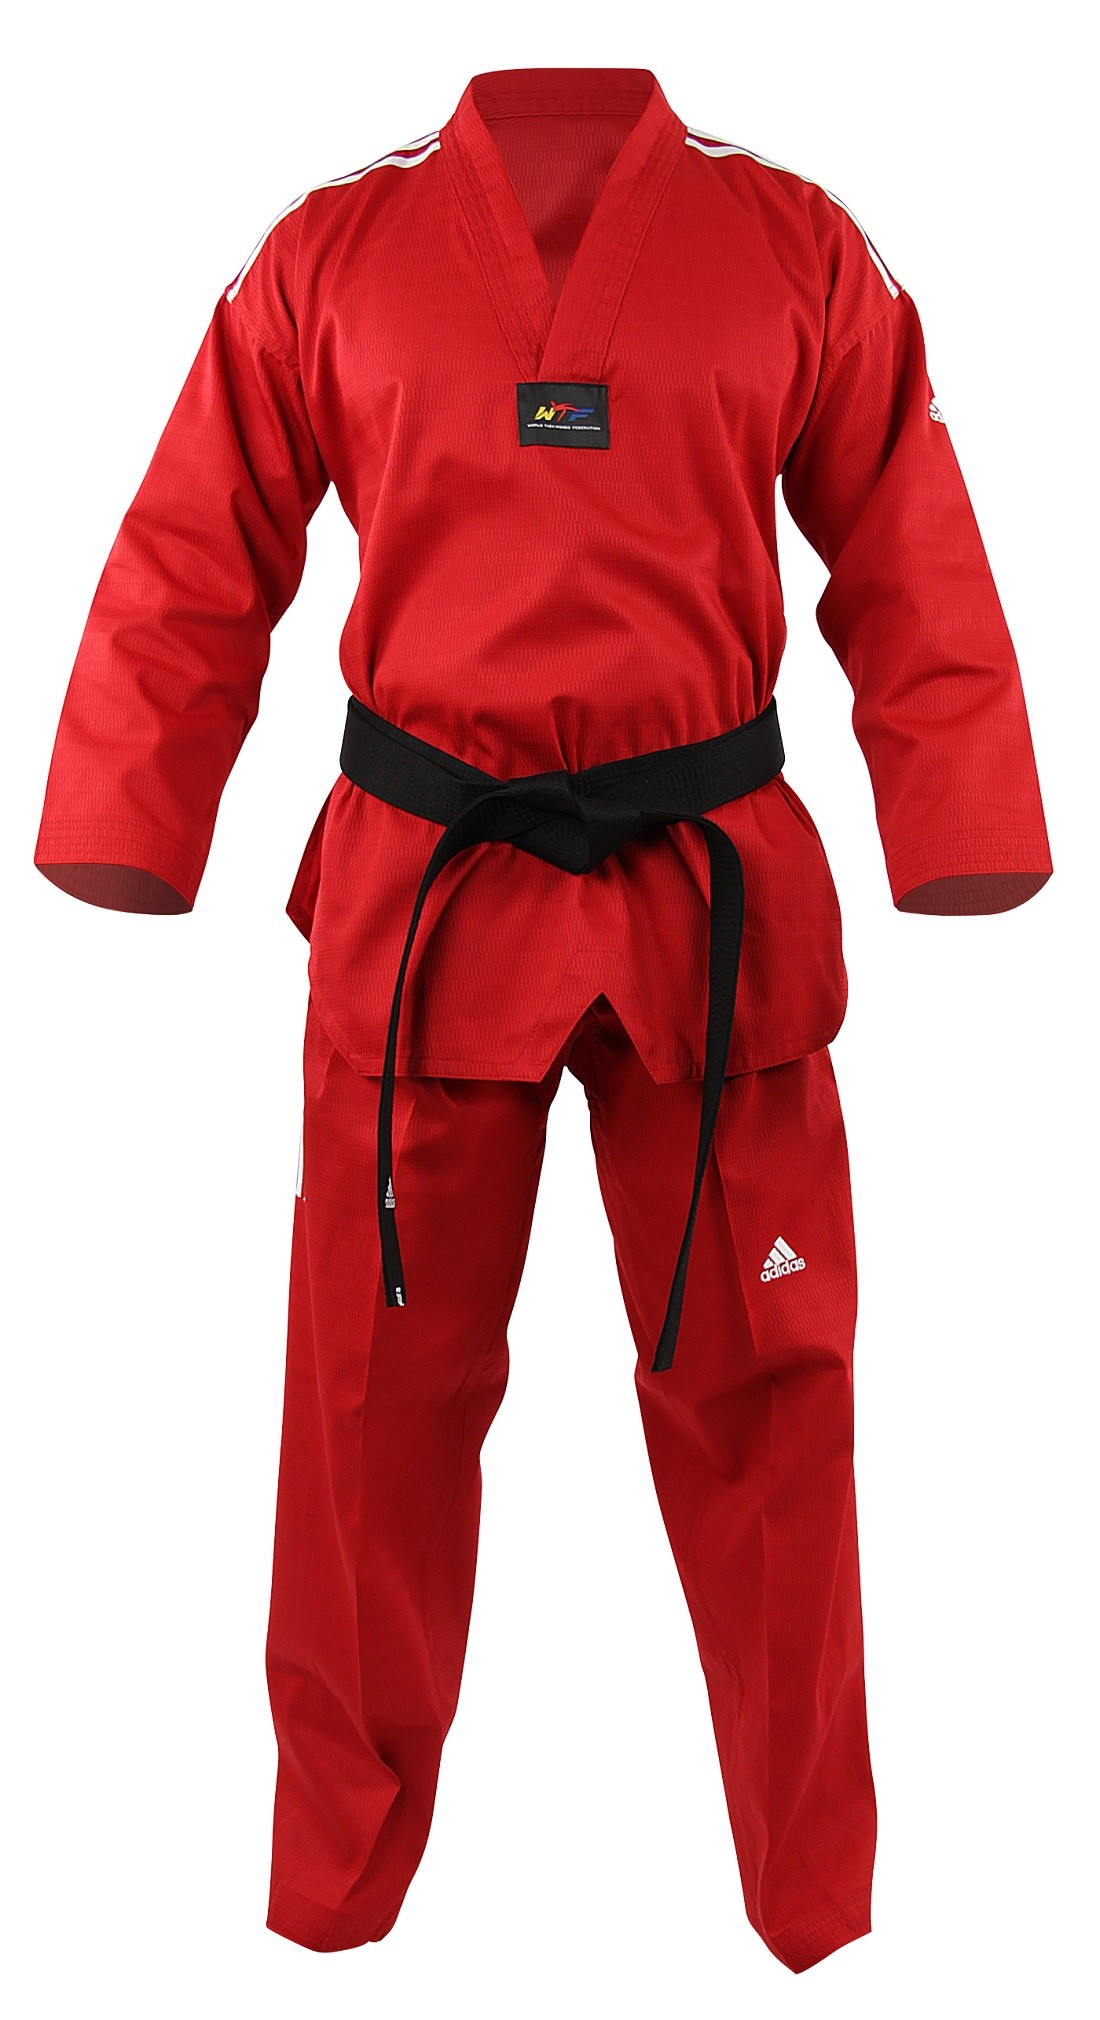 Dobok Adi-Champion Color Rojo